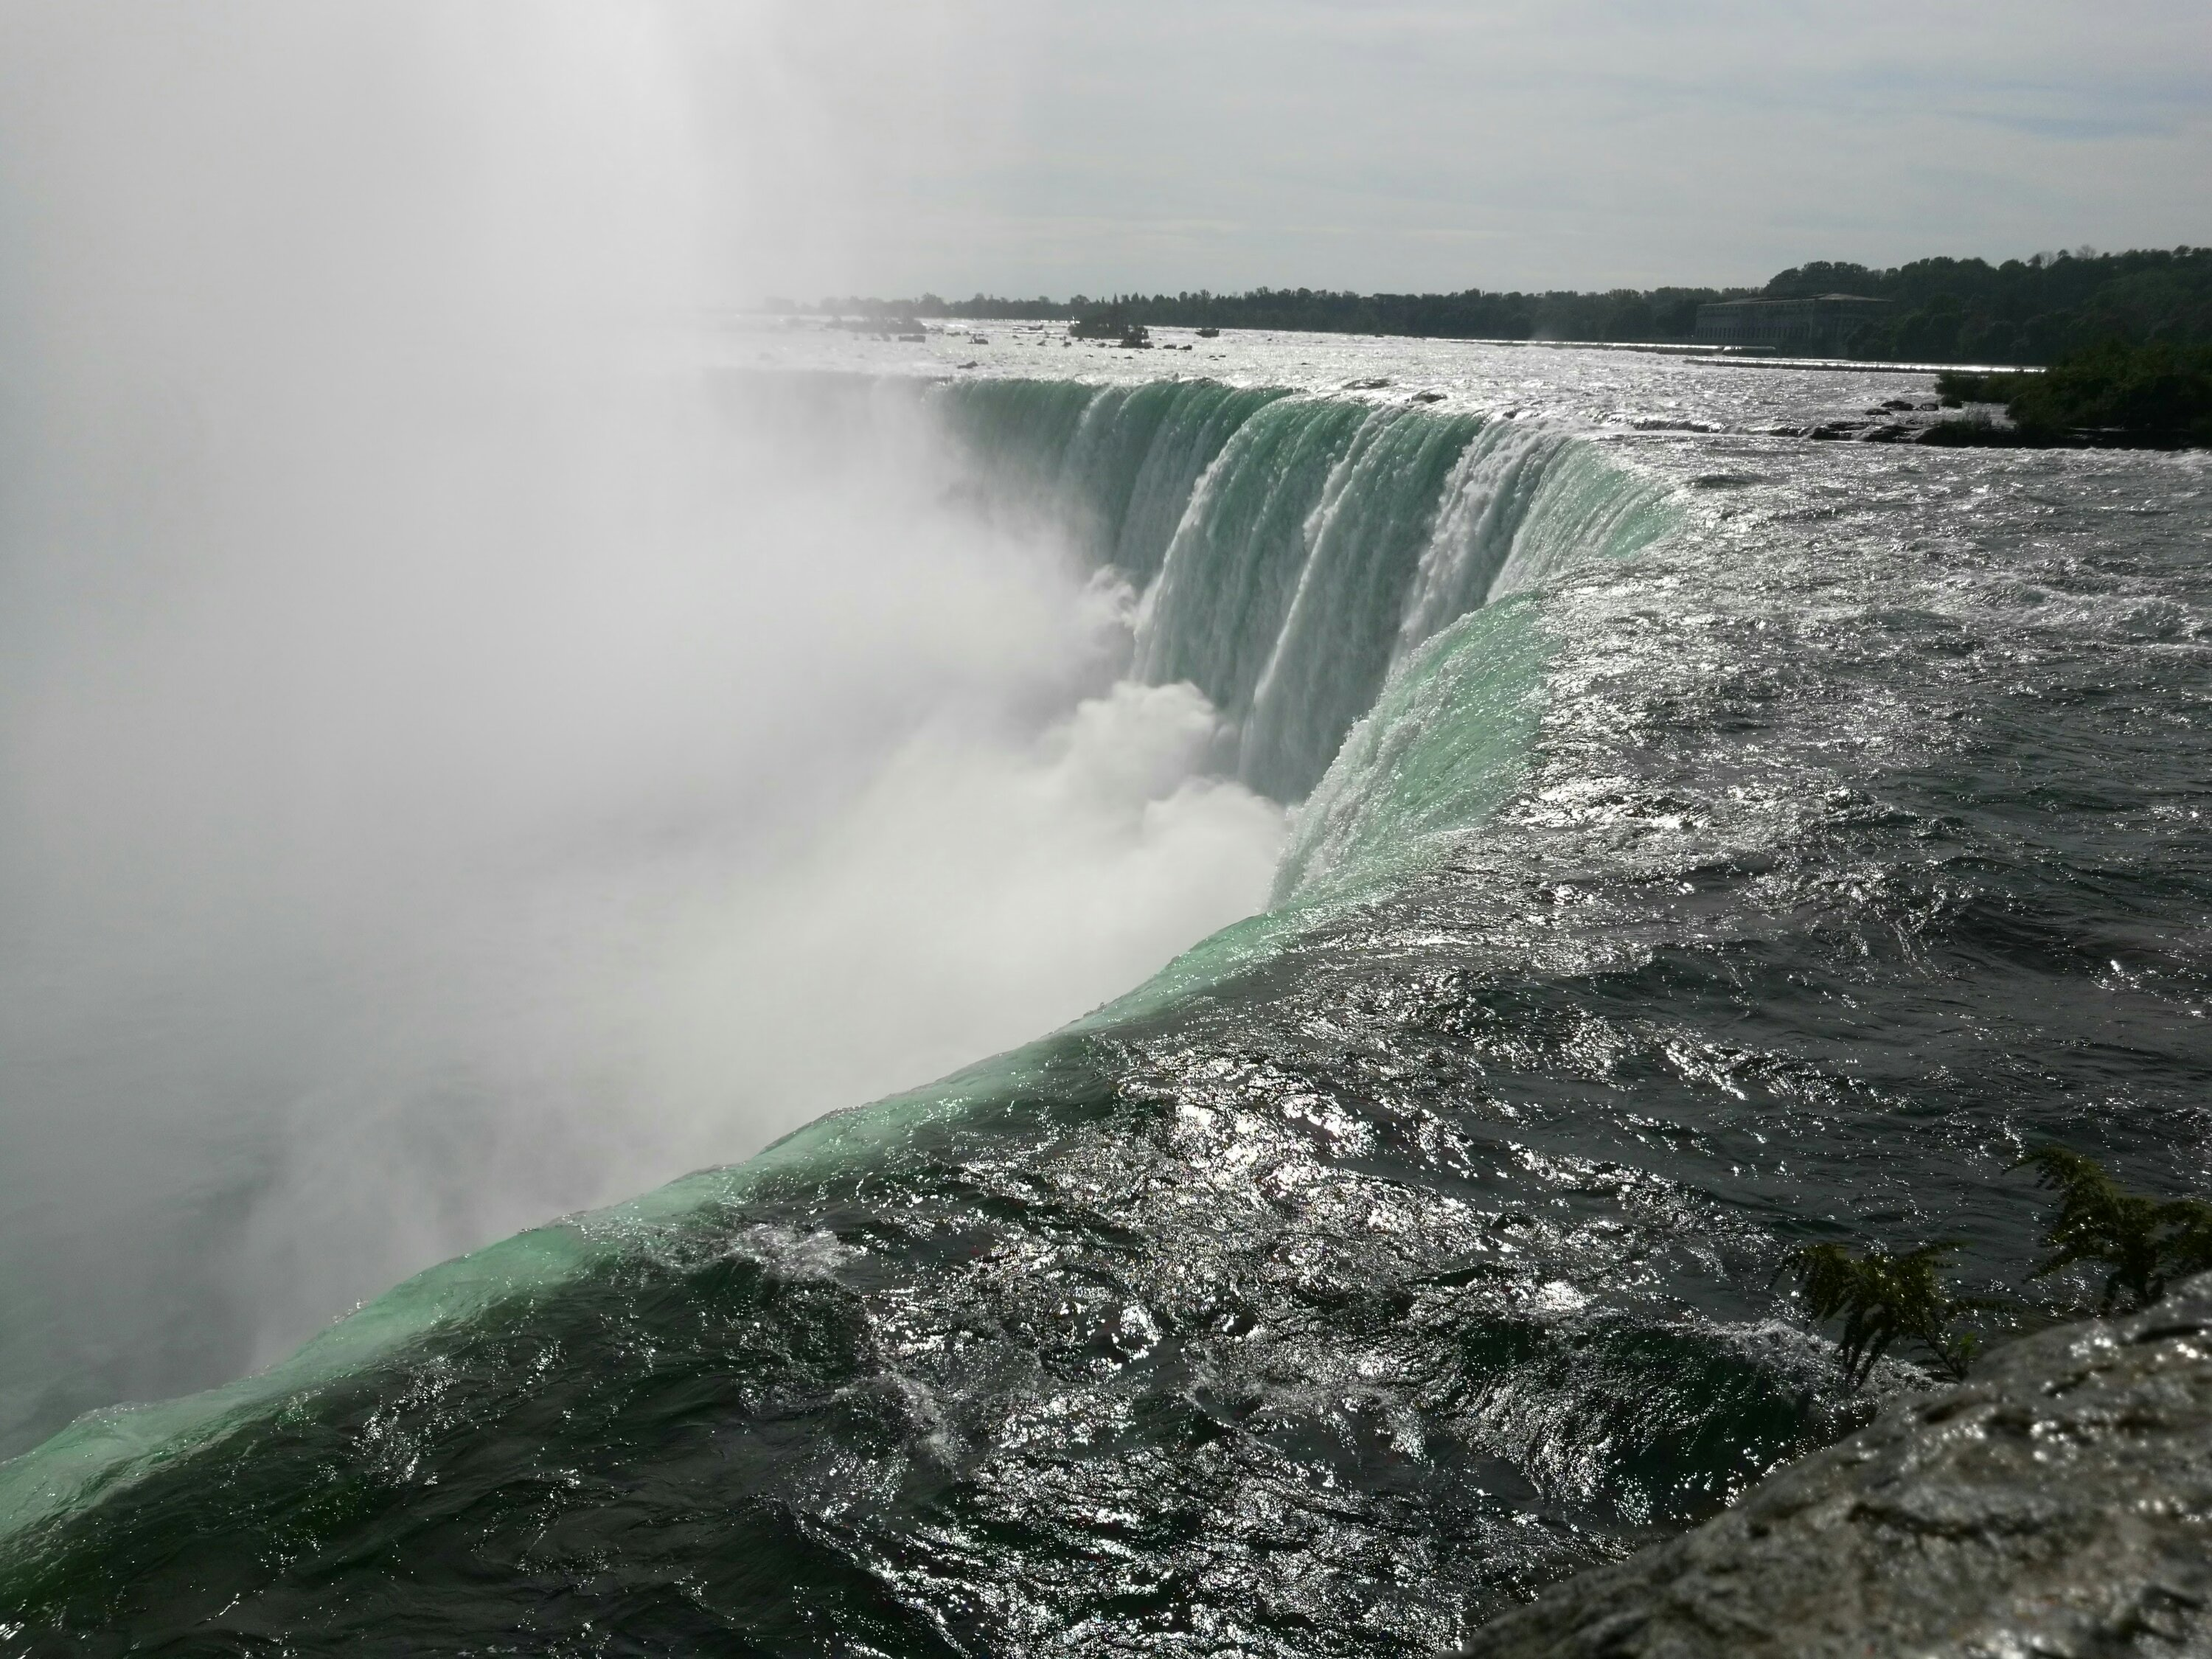 A side view of the Horseshoe Falls at Niagara